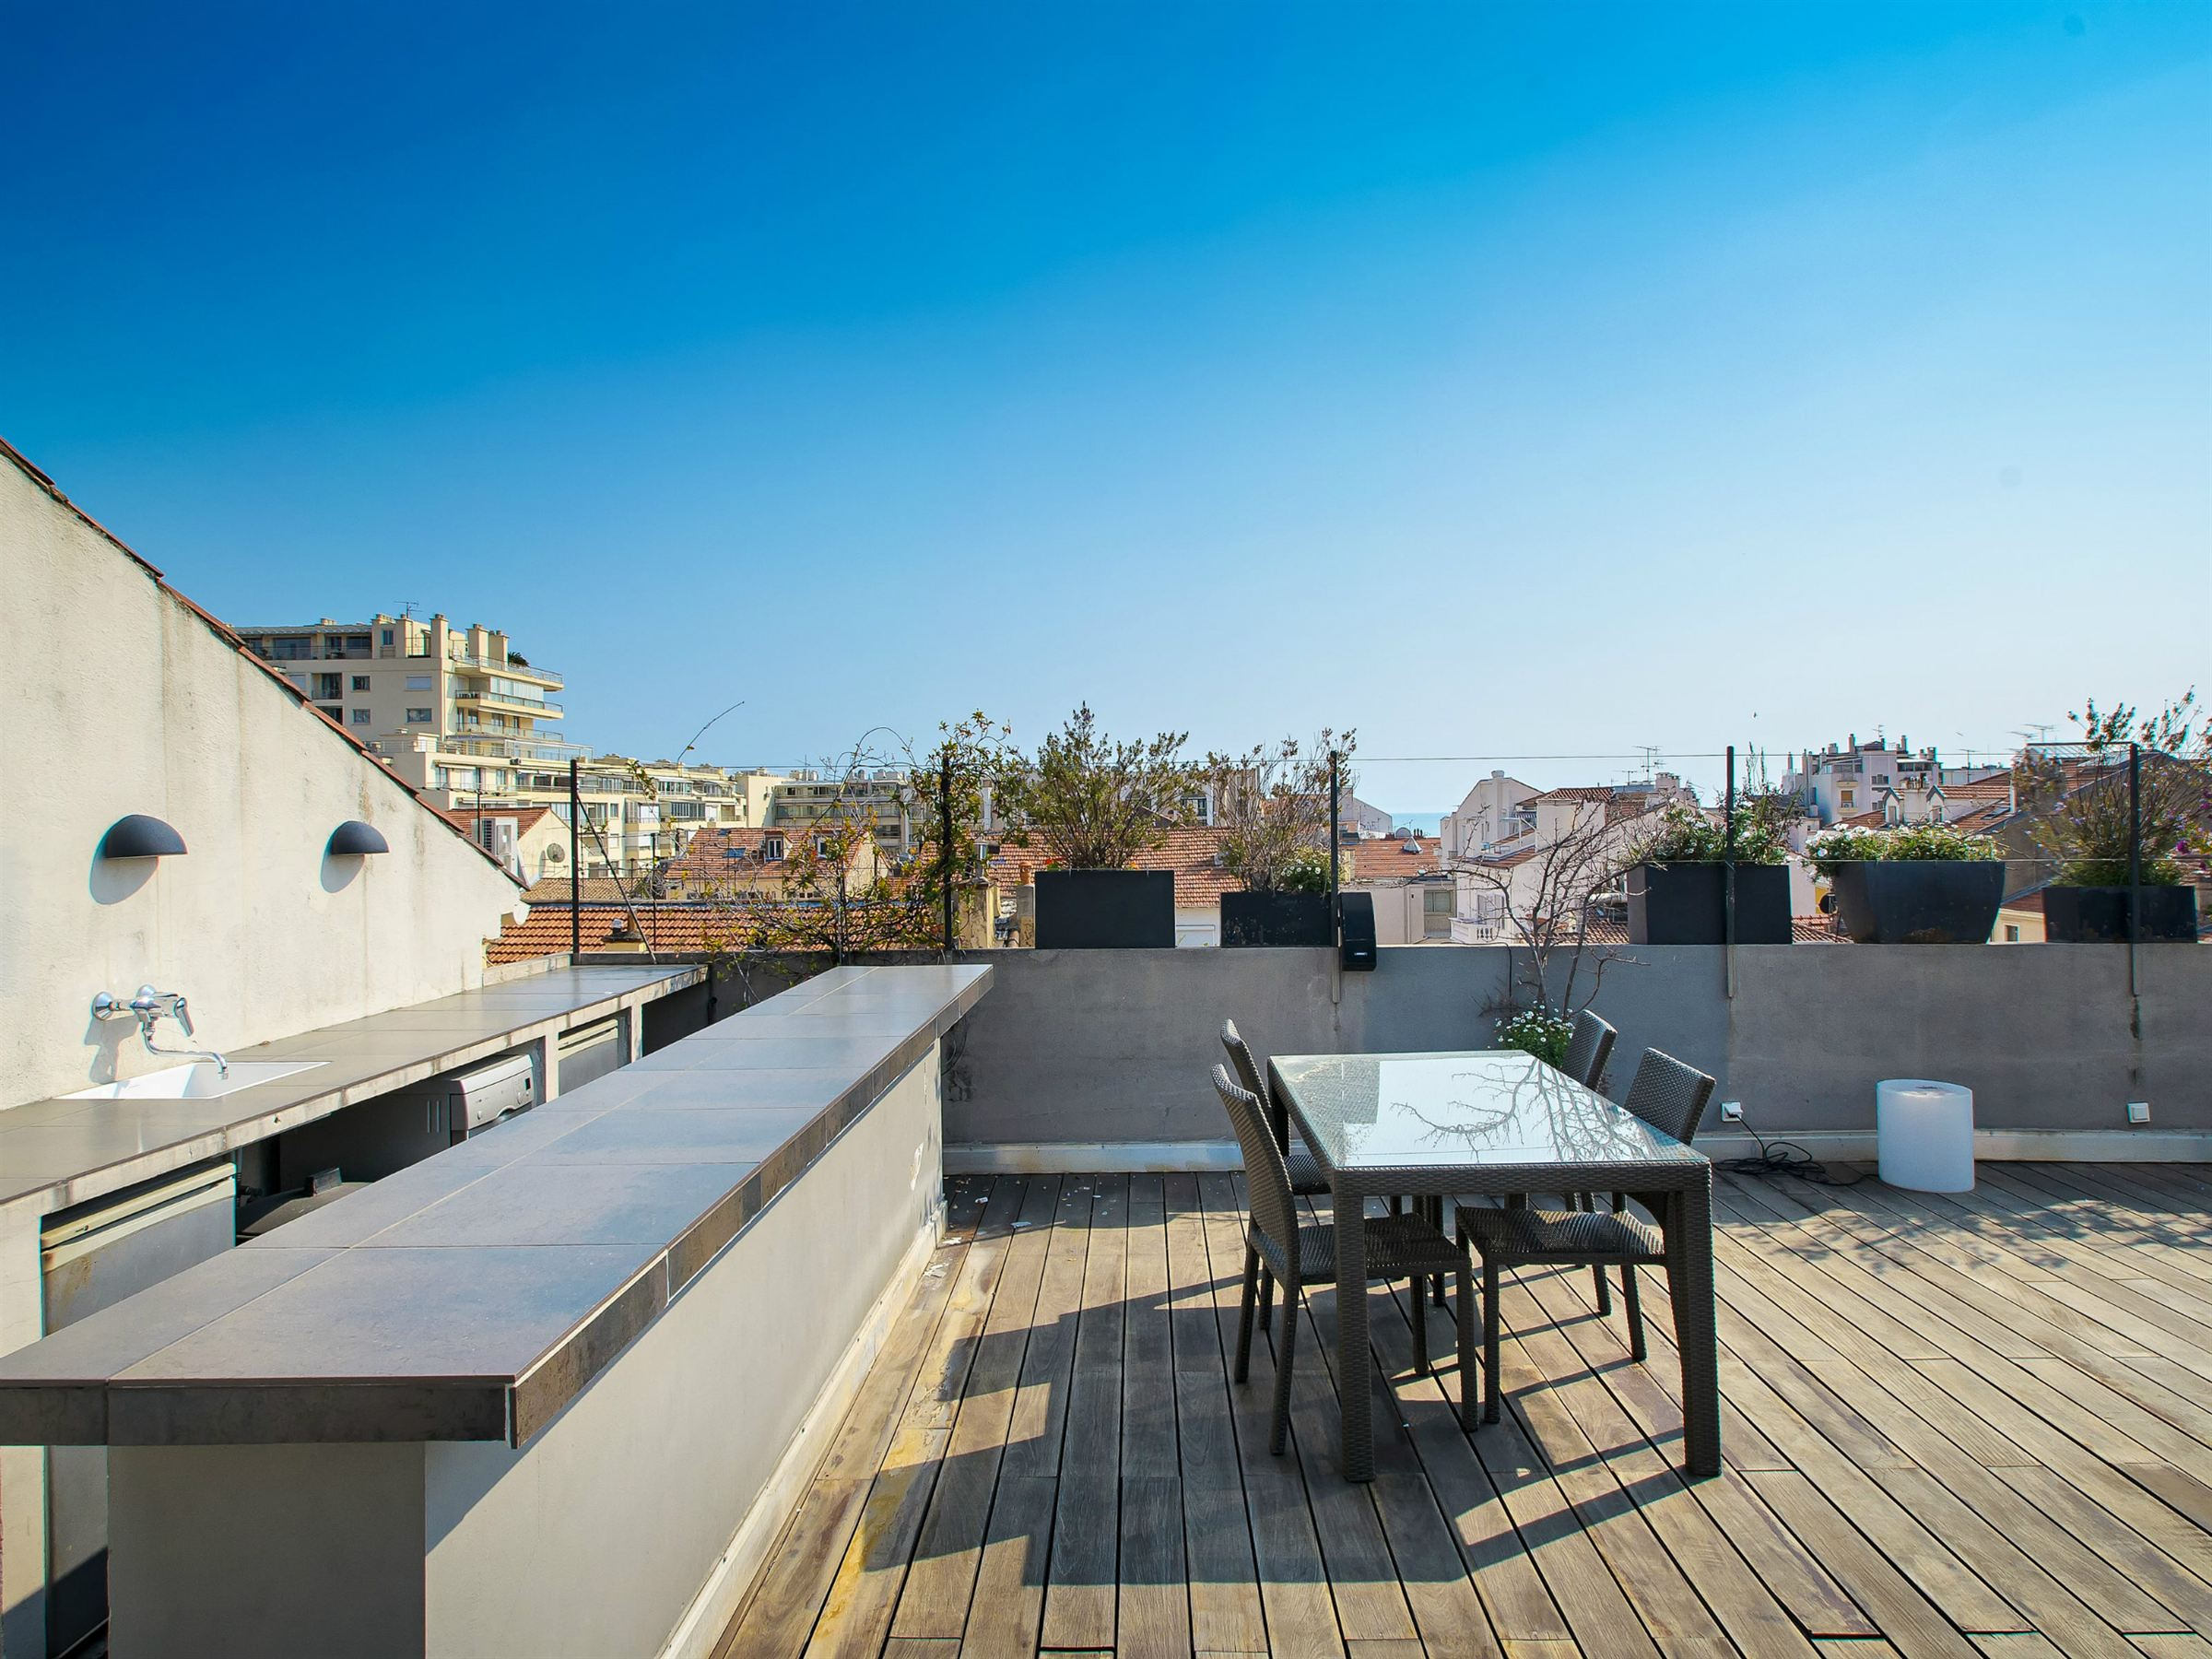 Apartment for Sale at Nice penthouse for sale in the heart of Cannes Cannes, Provence-Alpes-Cote D'Azur 06400 France